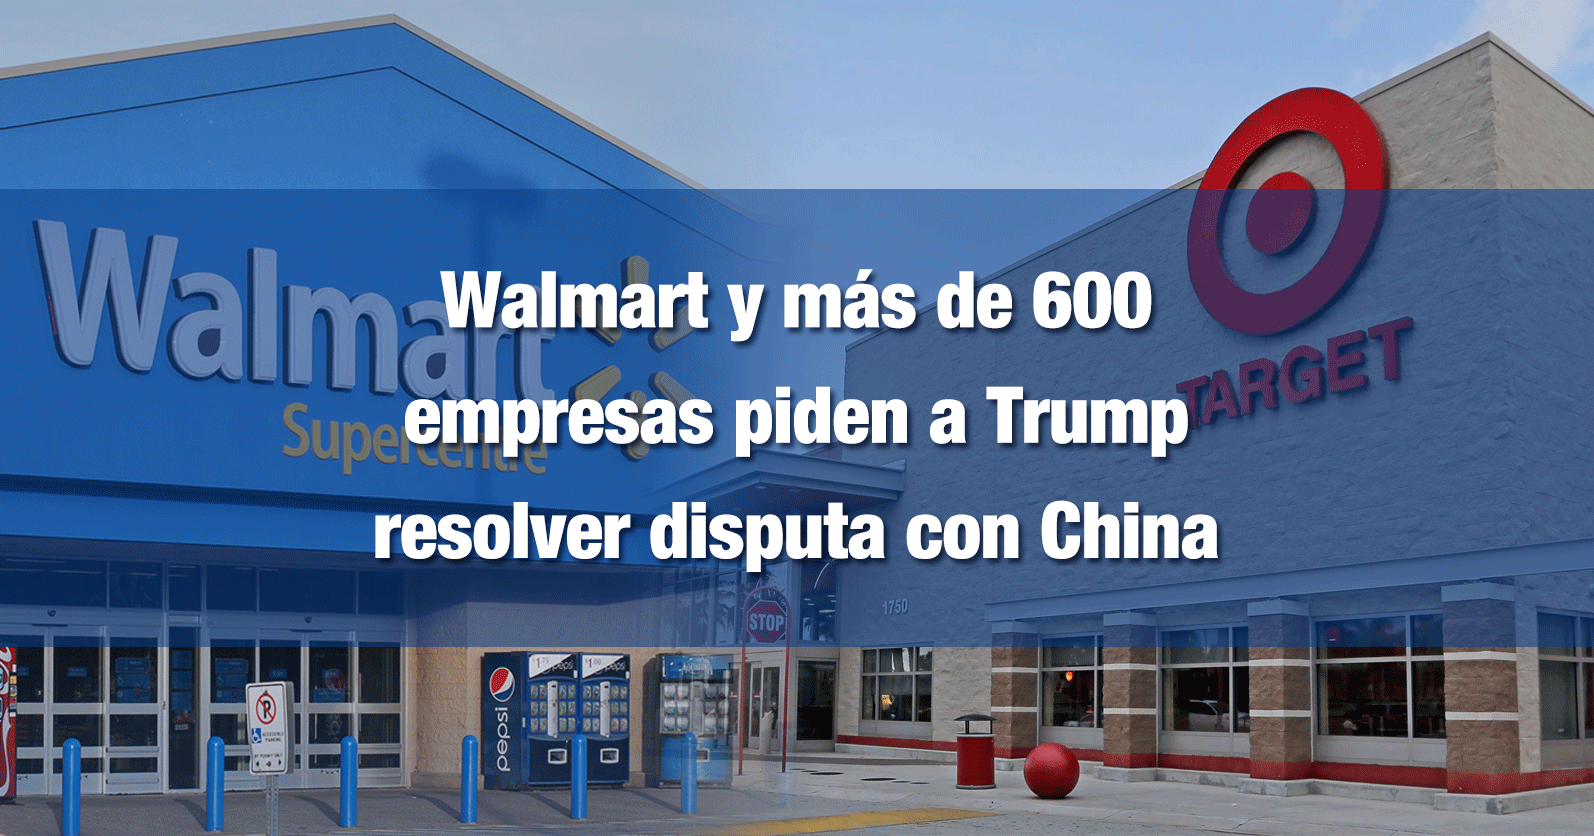 Walmart y más de 600 empresas piden a Trump resolver disputa con China